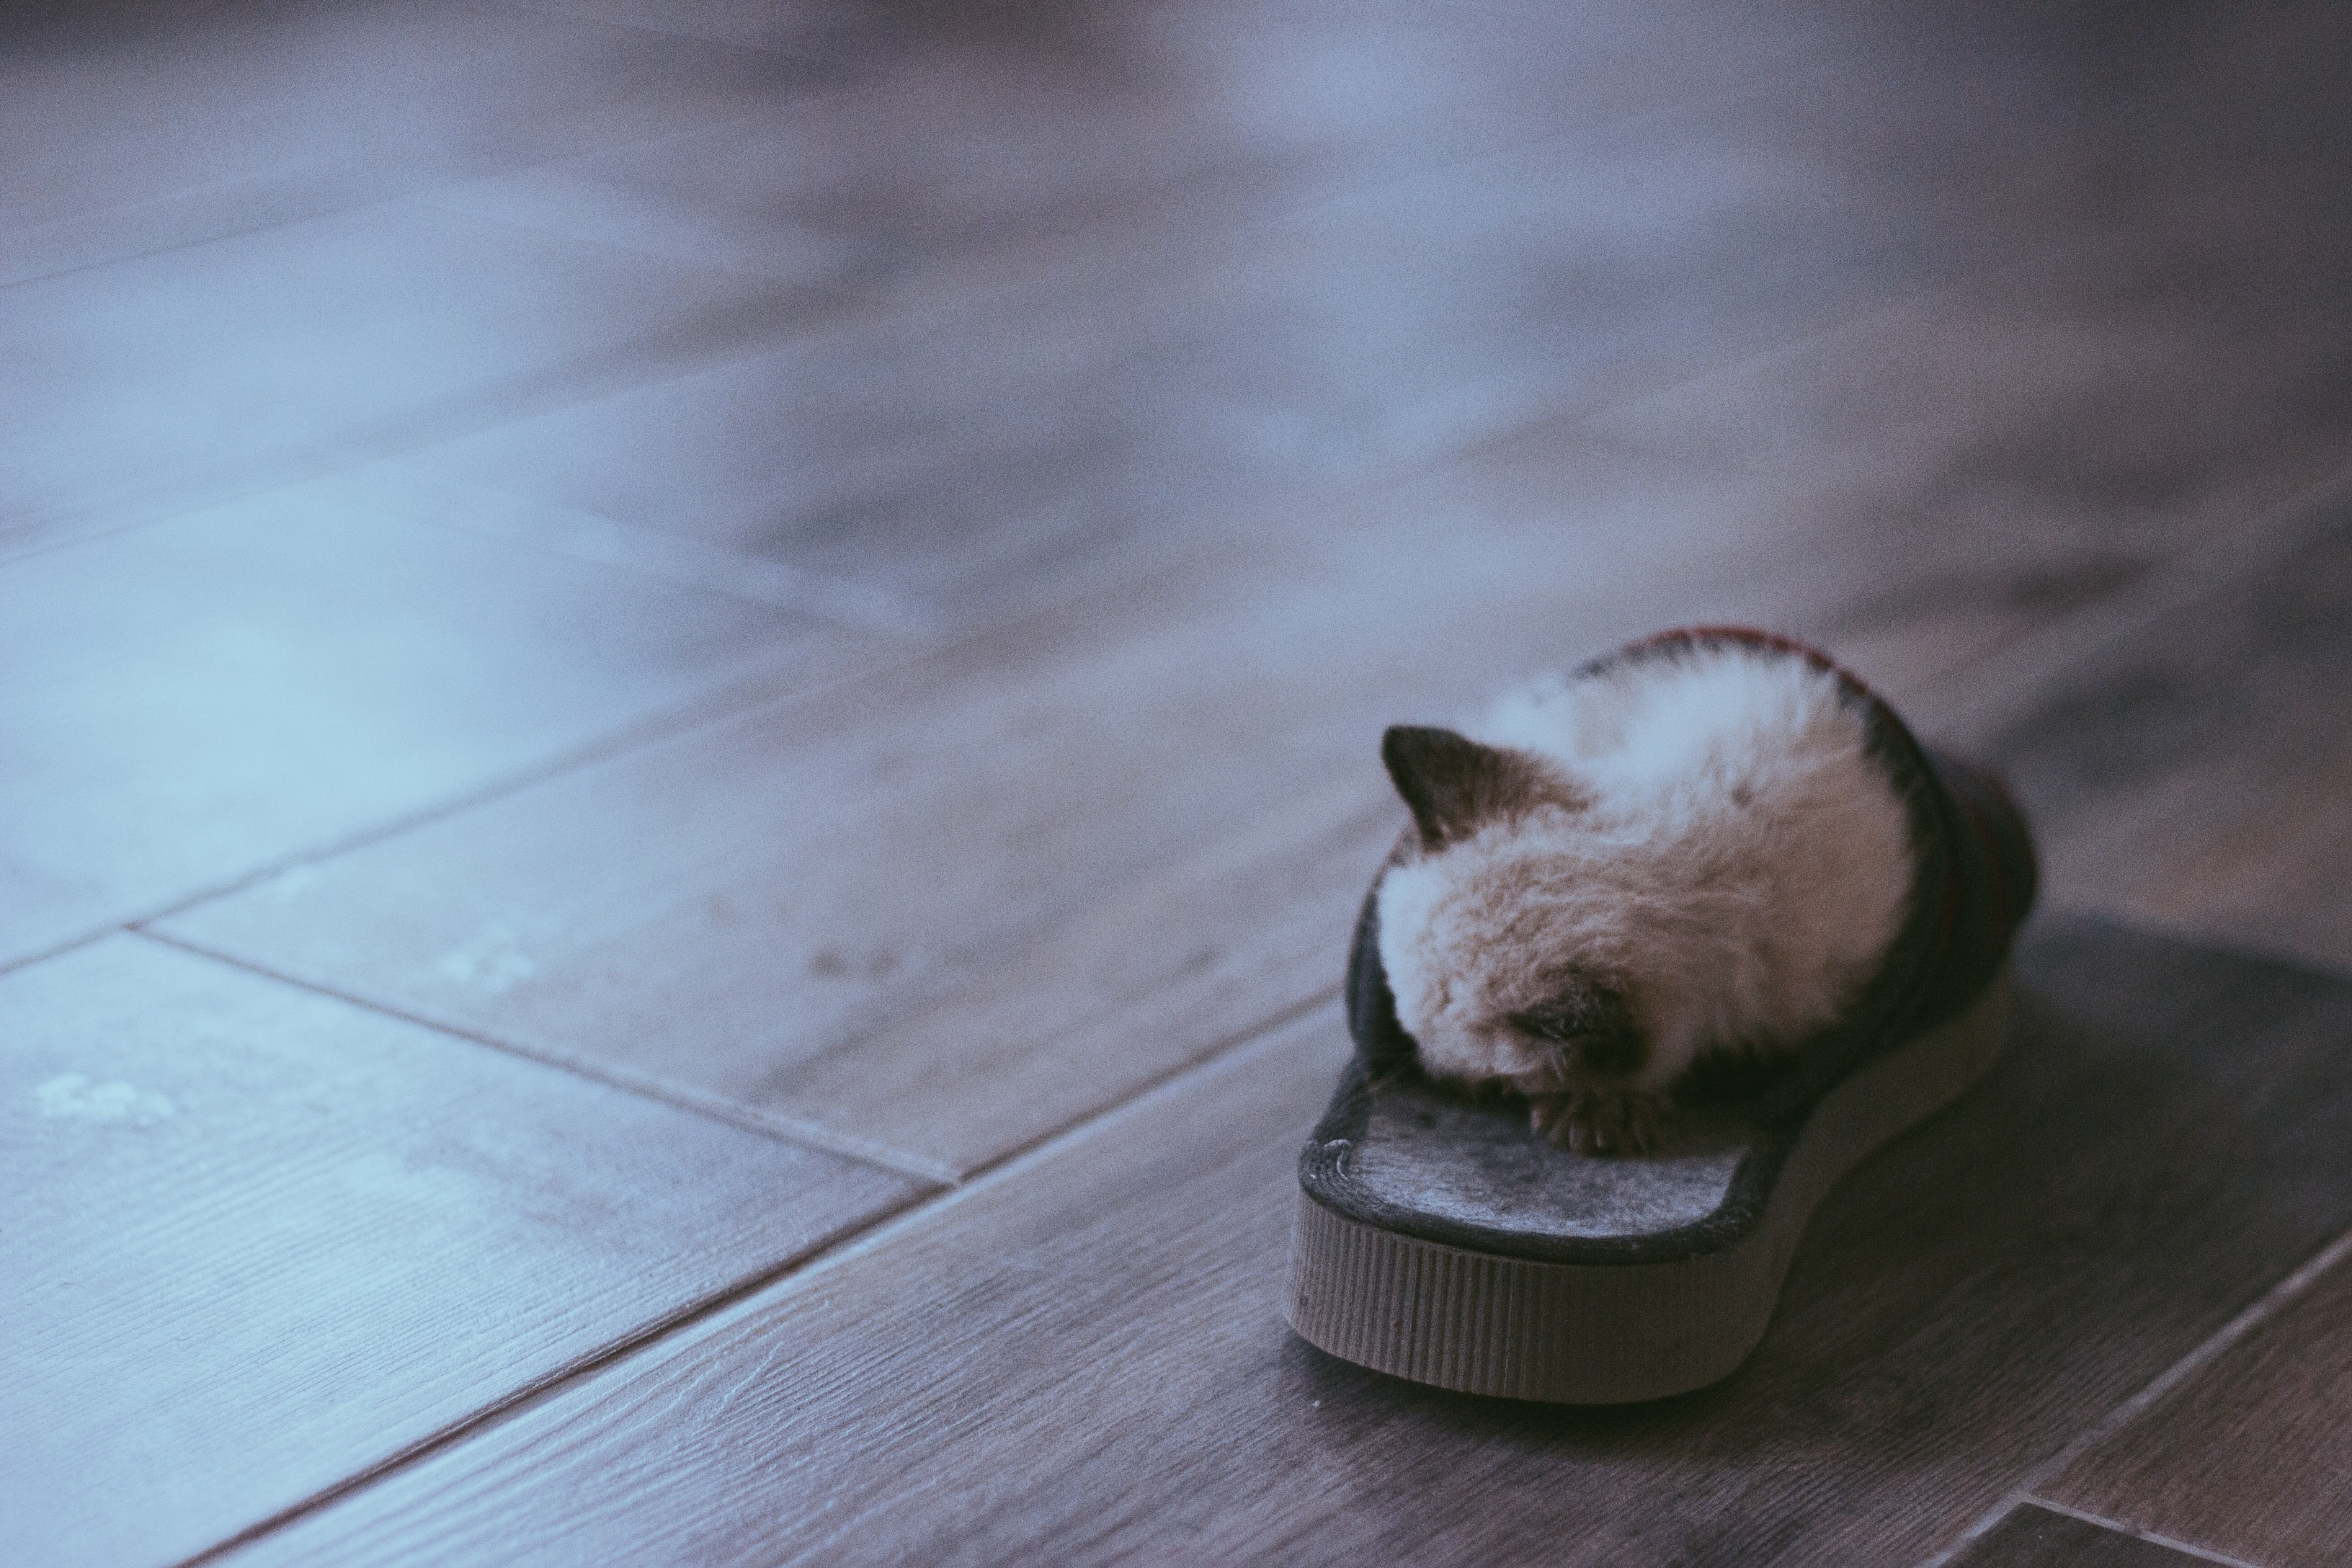 Siamese kitten sleeping in slide sandals